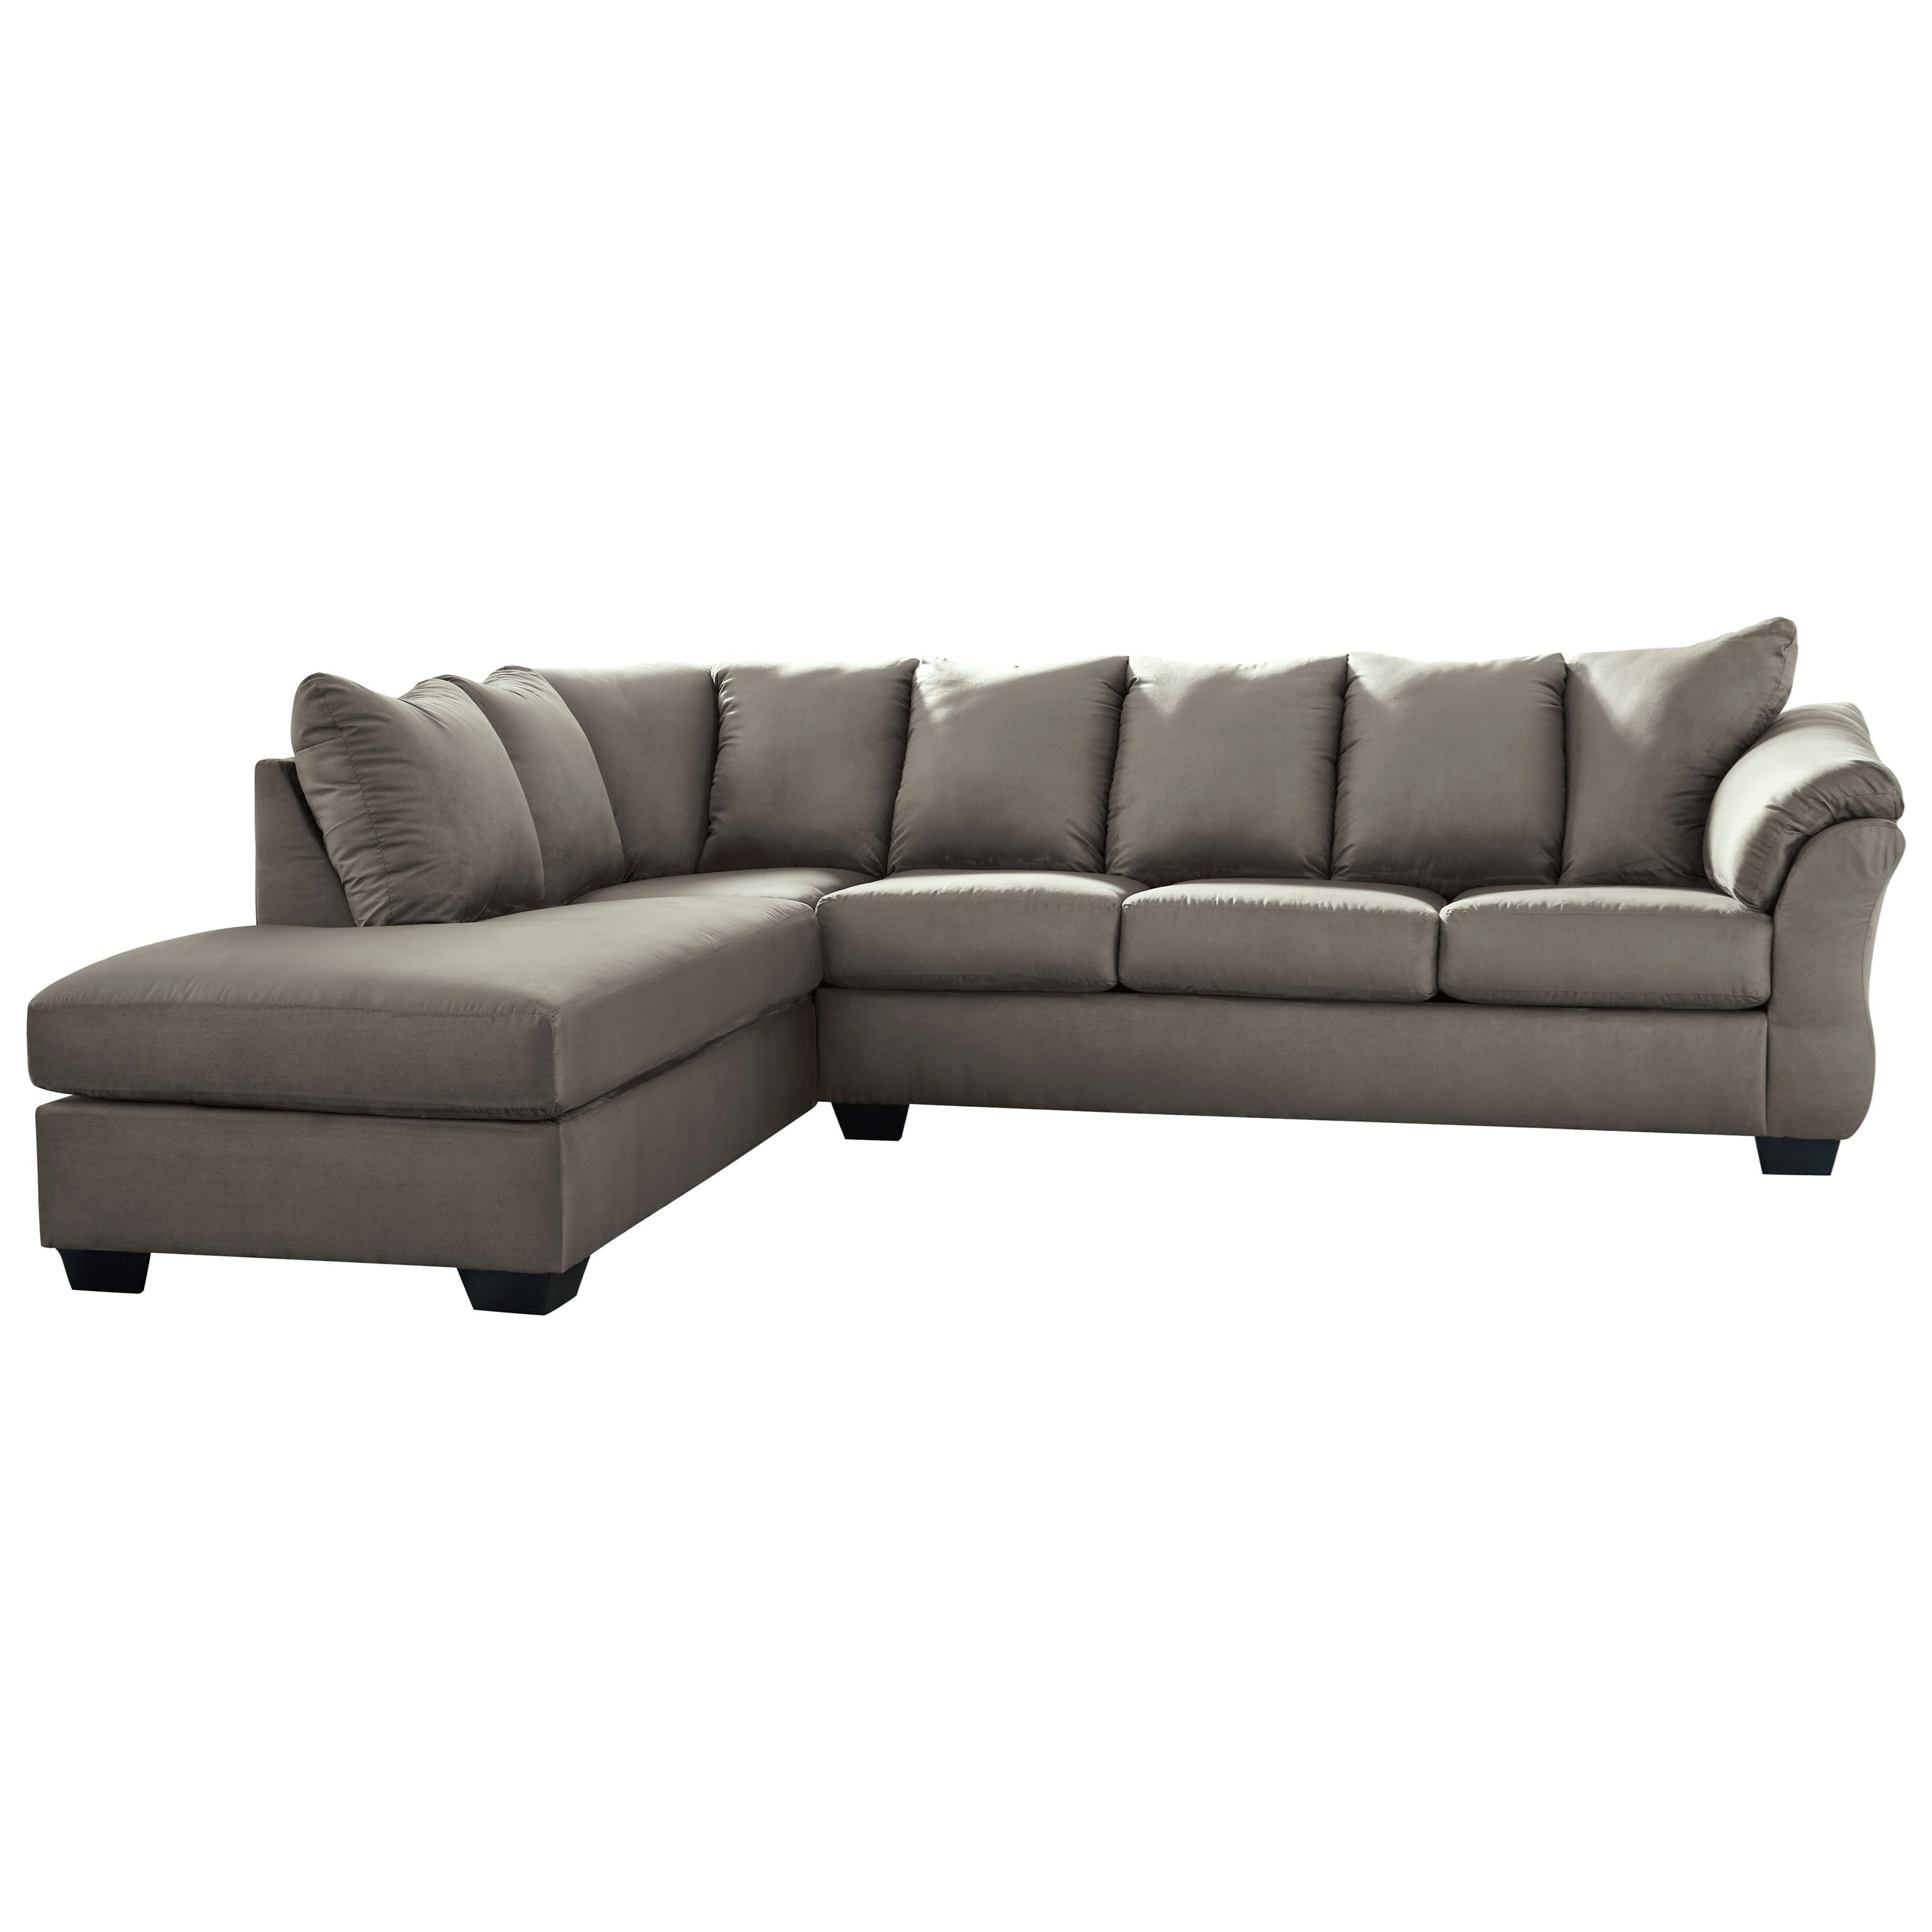 Darcy - Cobblestone 2-Piece Sectional Sofa with Chaise by Signature at Walker's Furniture